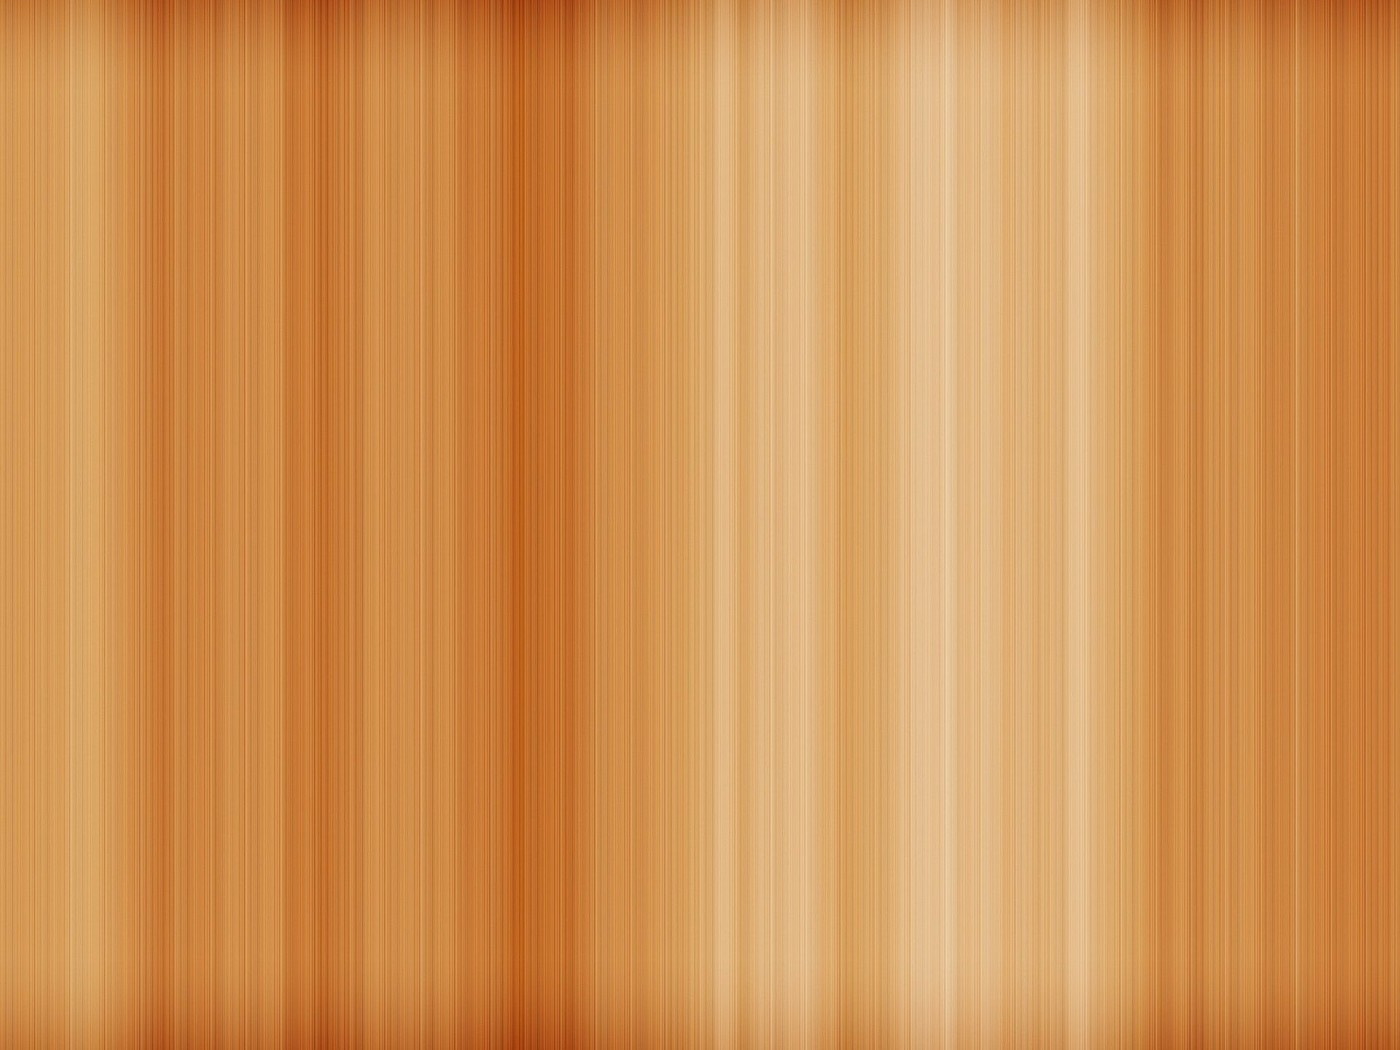 Light wood panel texture Kitchen Wood Wallpaper Resolutions Shutterstock Light Textures Wood Panels Texture Wallpaper Allwallpaperin 2477